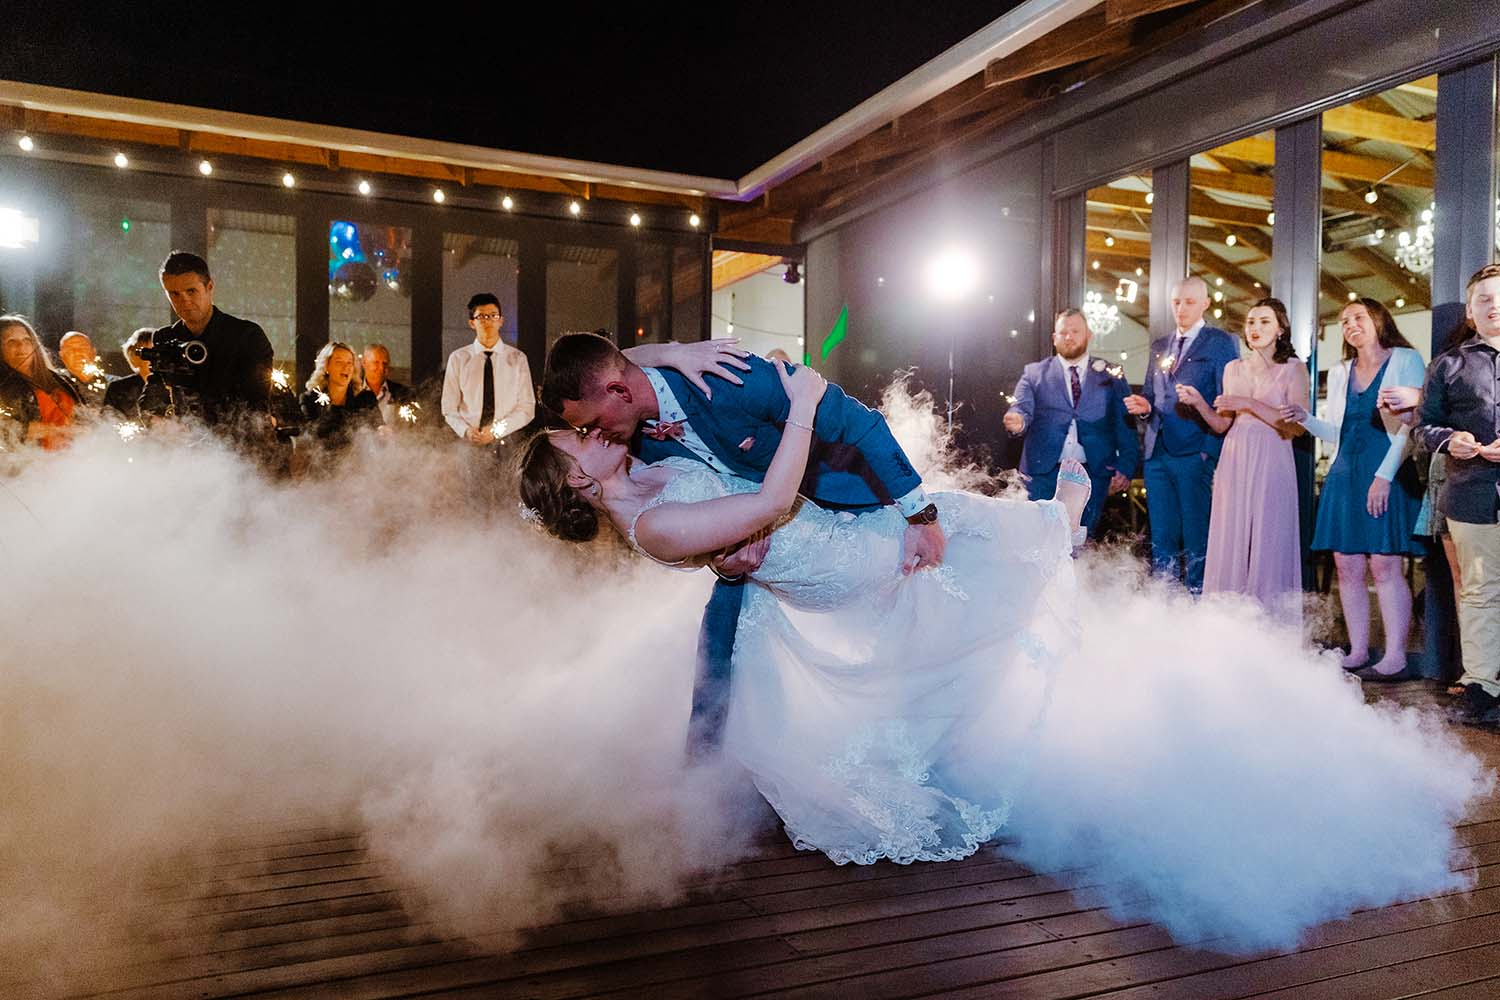 Wedding Photography - first dance bride and groom